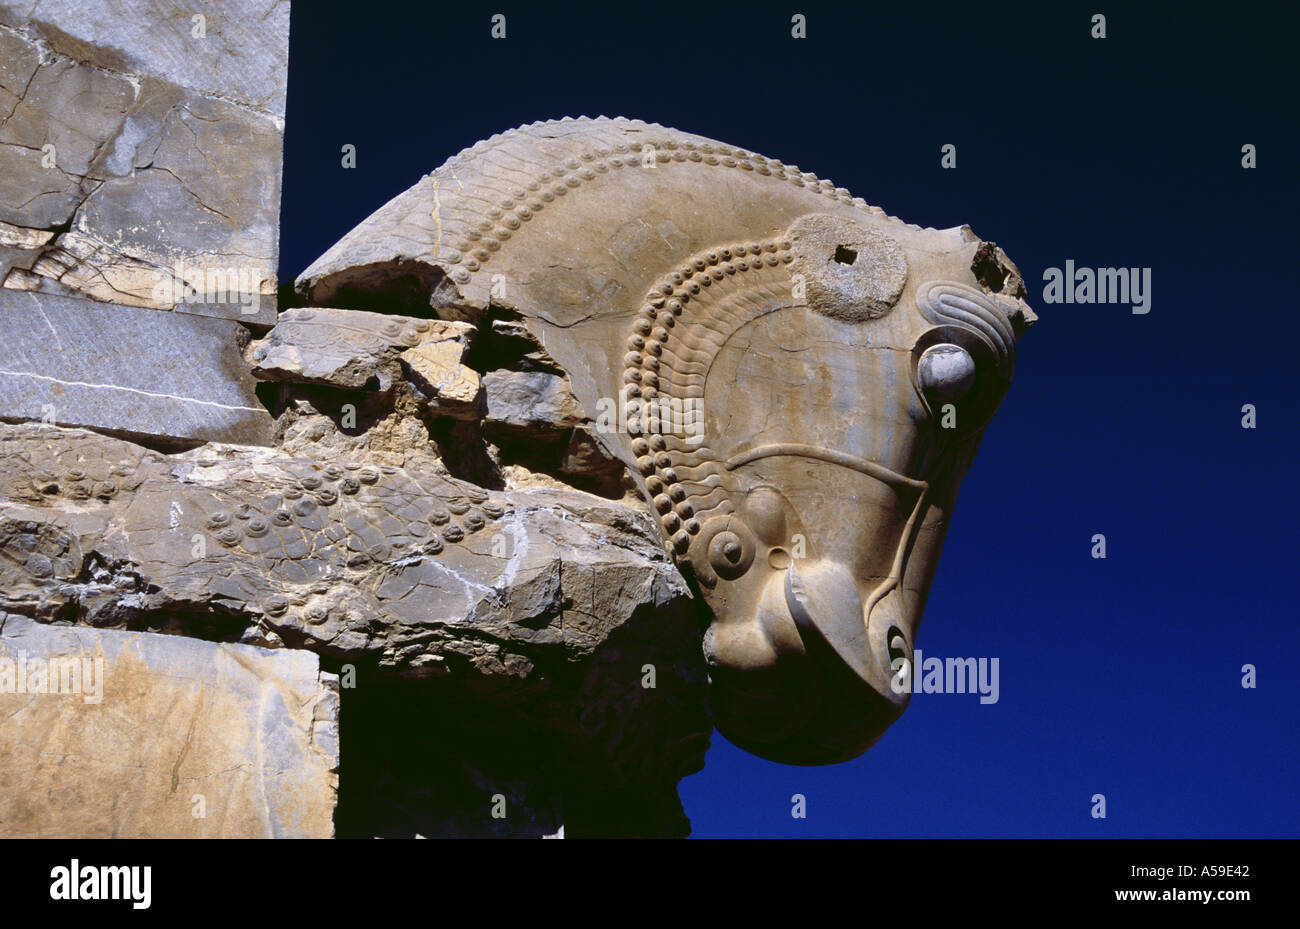 Iran Persepolis Head Of A Horse Stone Moument Stock Photo Alamy